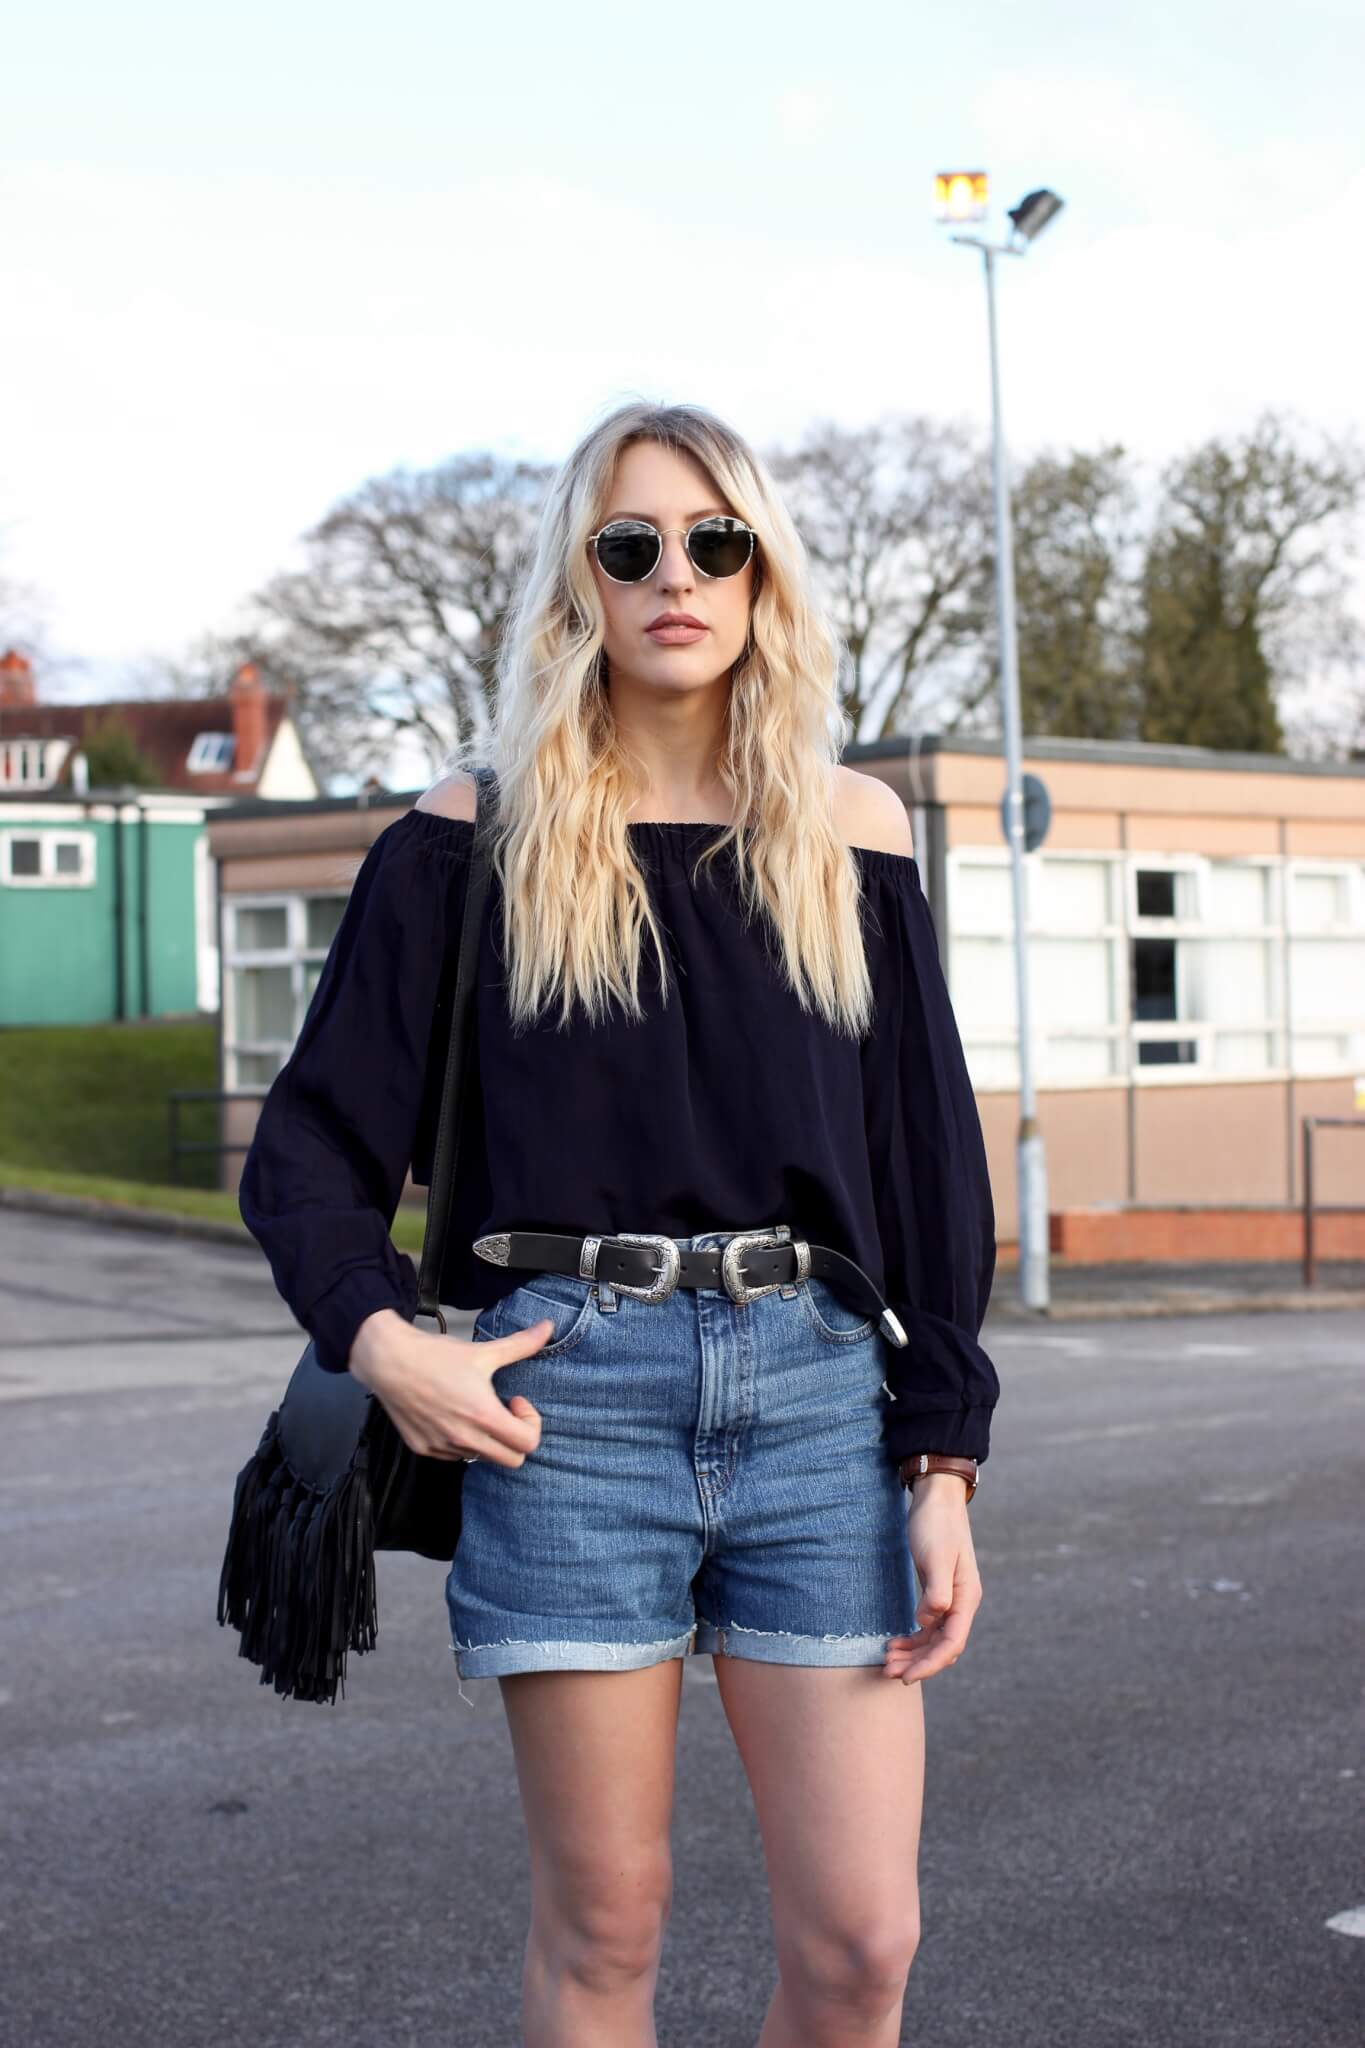 Off The Shoulder Top Revolve Clothing Asos Denim Shorts And Belt Rayban Round On